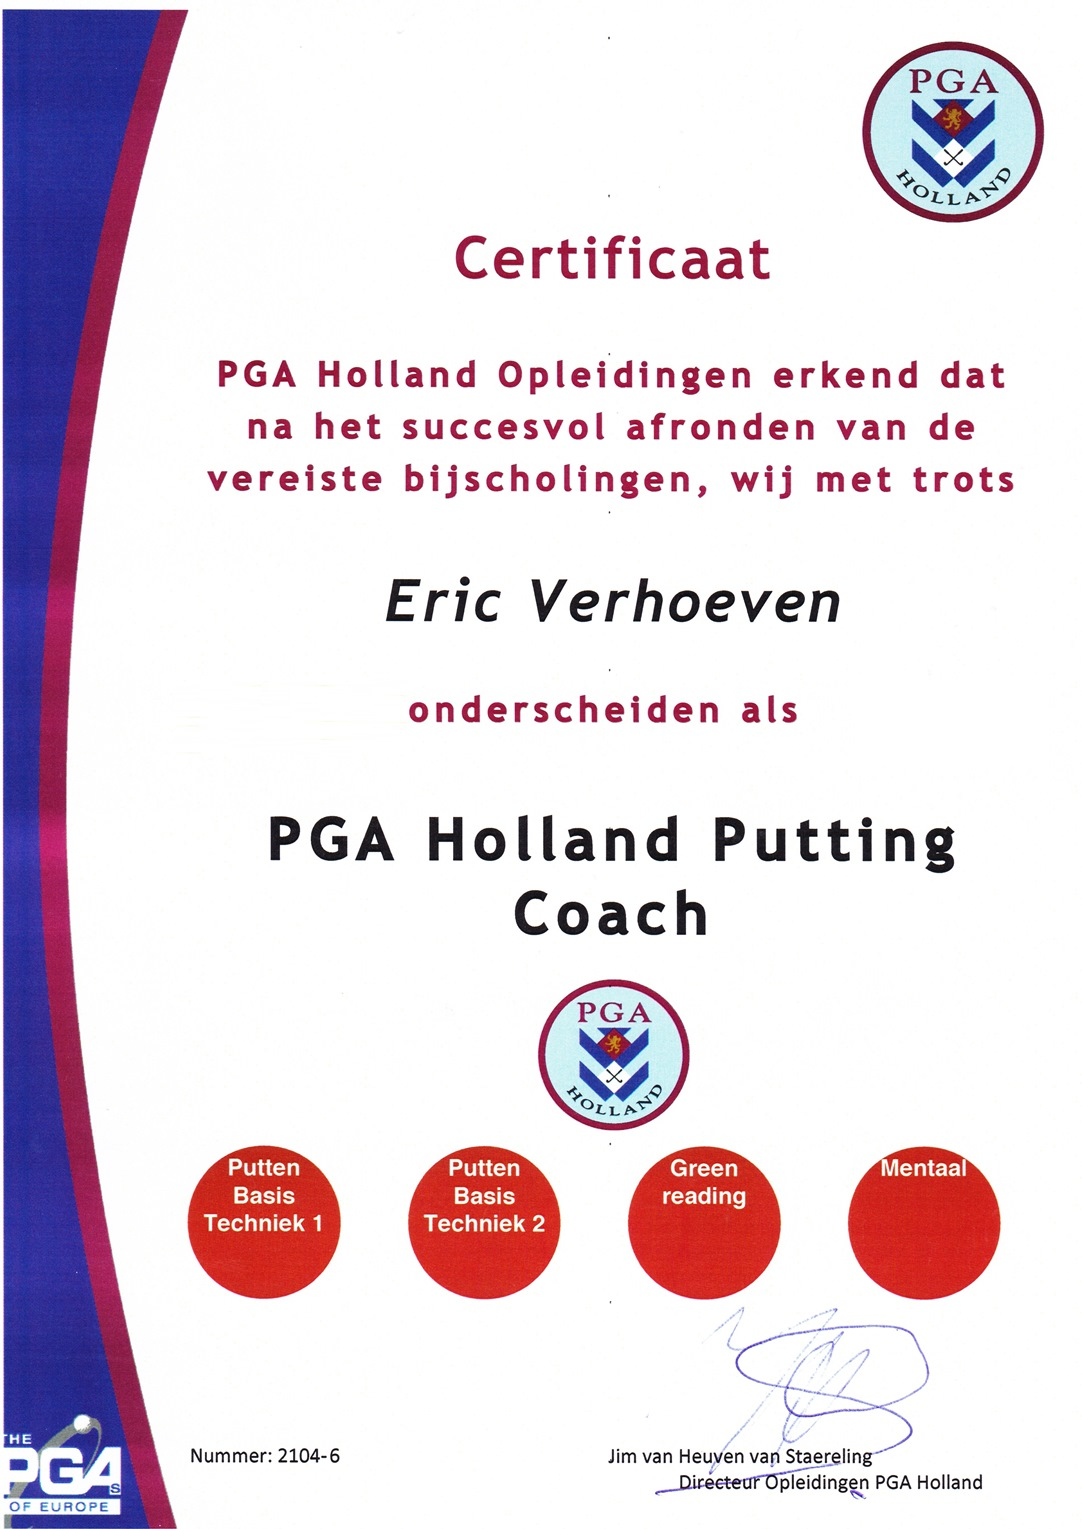 putting coach website versie